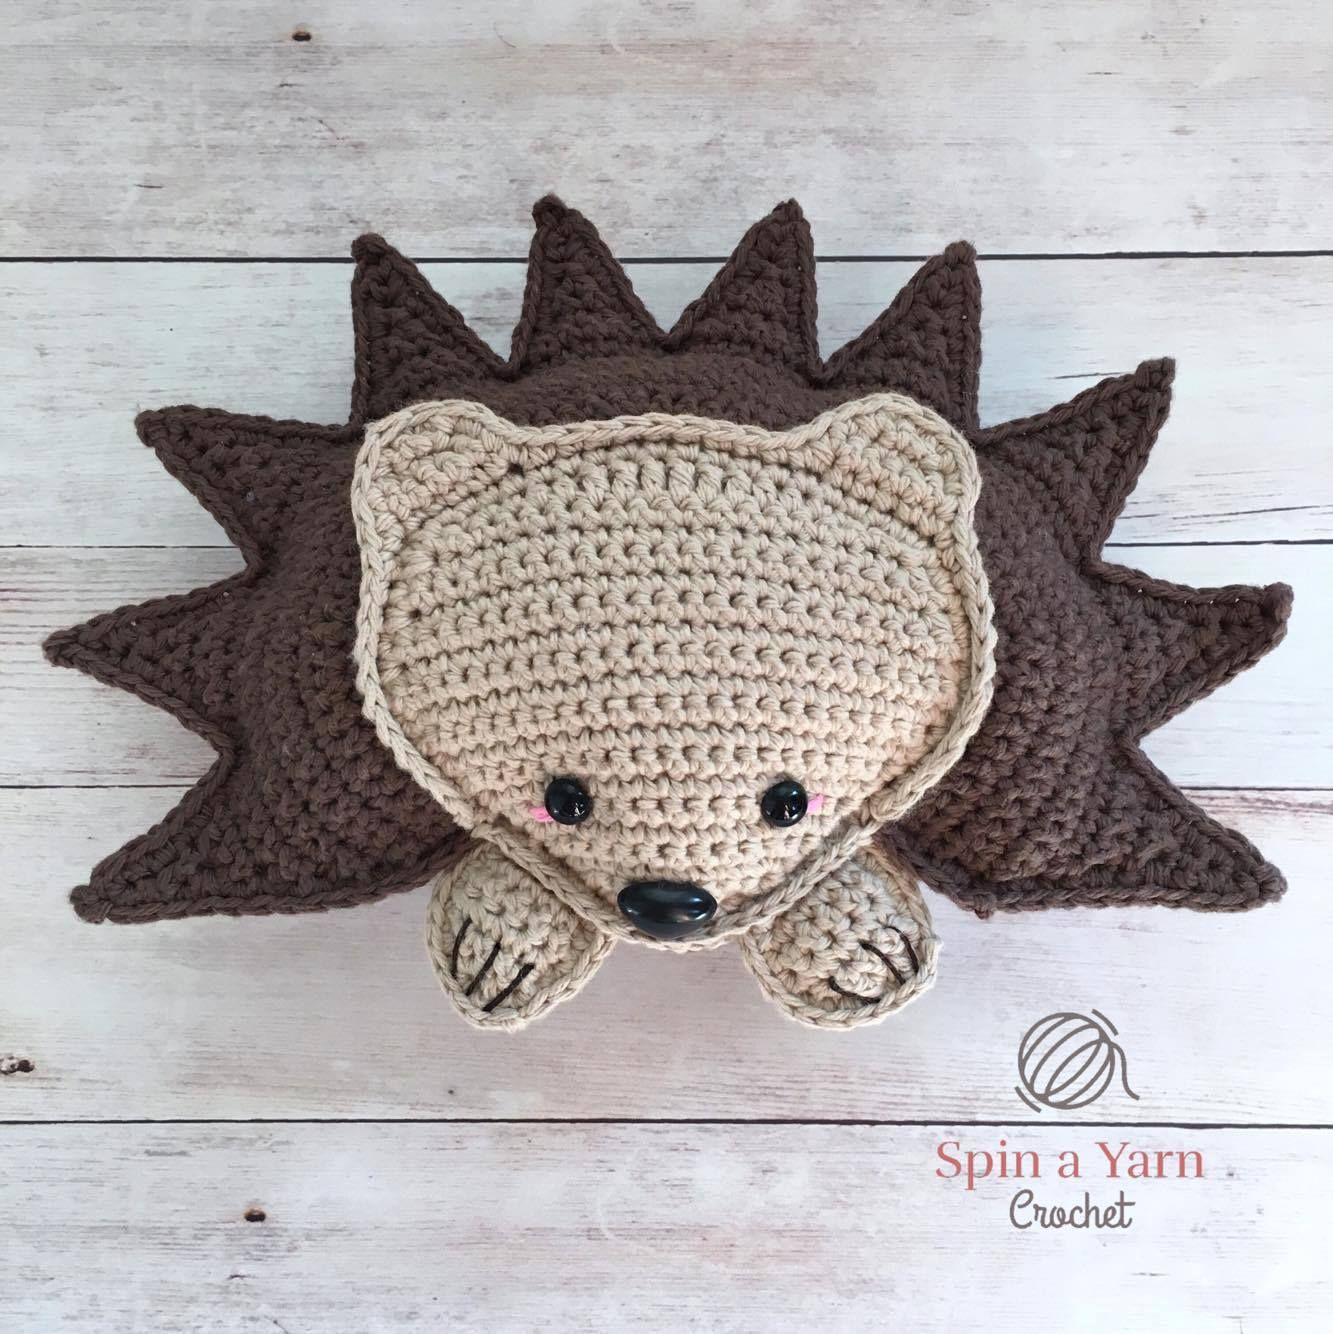 Pin de Katherine Mora en Just crochet | Pinterest | Regalos para ...